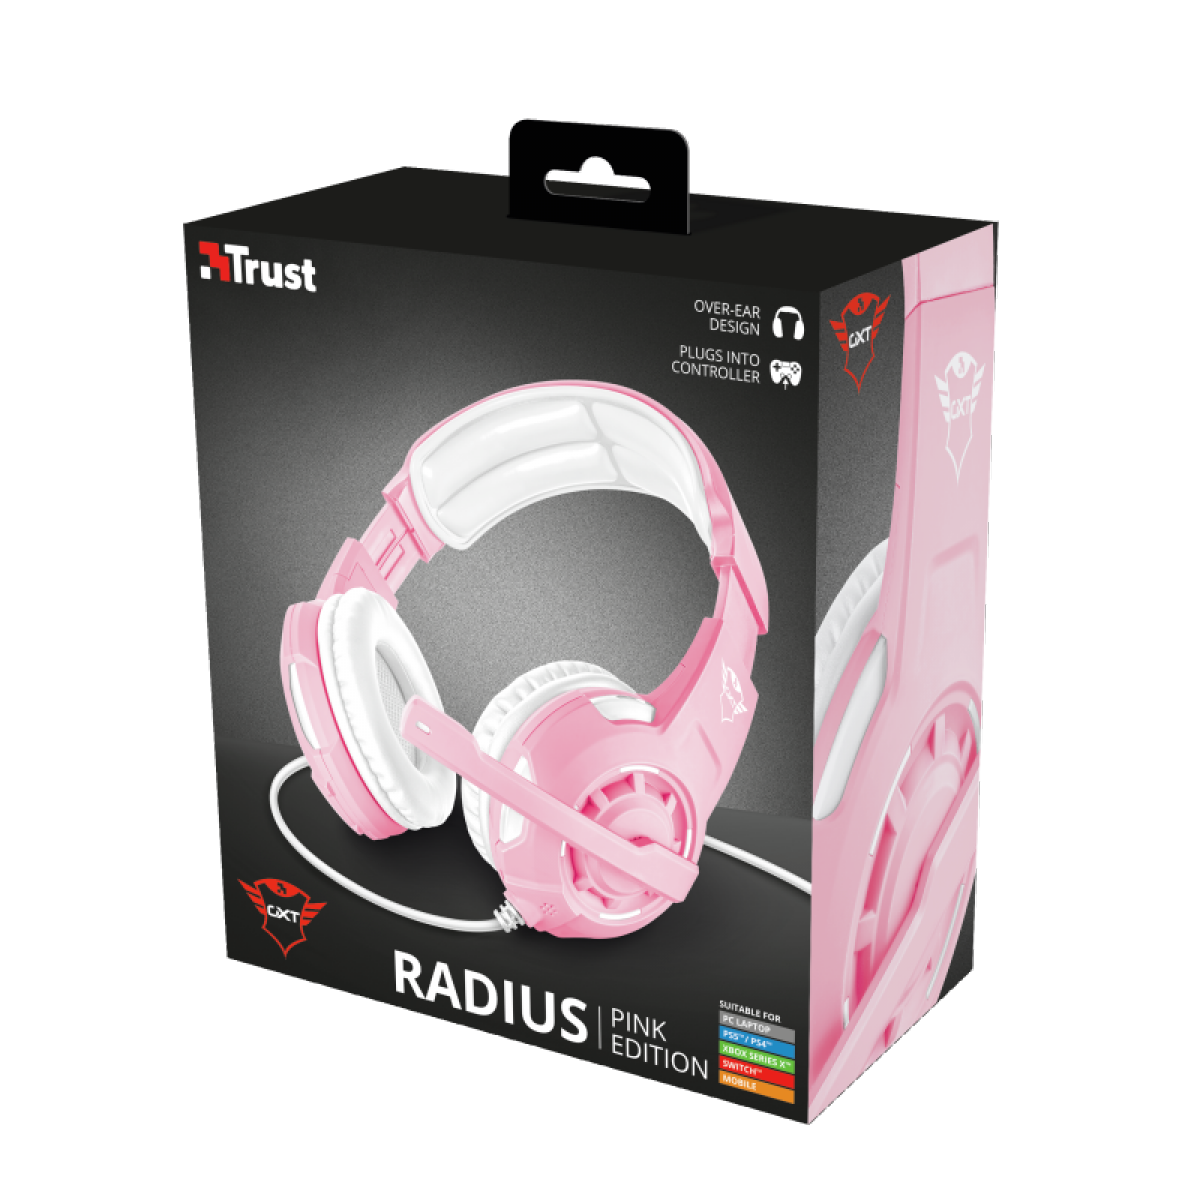 Headset Gamer Trust, GXT 310P Radius Pink, 3,5mm, White/Black, T23203